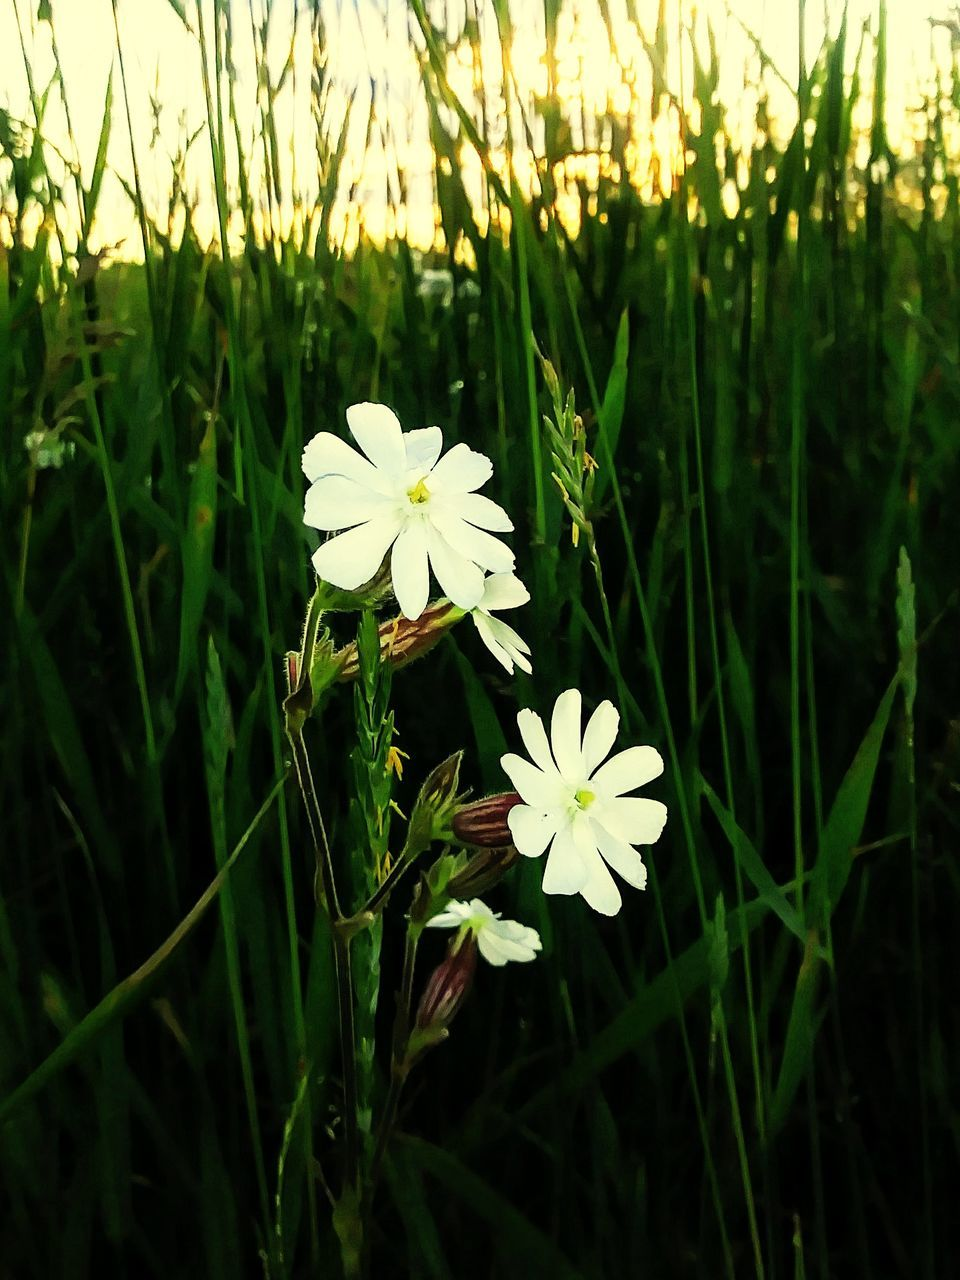 flower, growth, nature, beauty in nature, fragility, petal, white color, freshness, plant, flower head, blooming, field, grass, green color, no people, outdoors, day, close-up